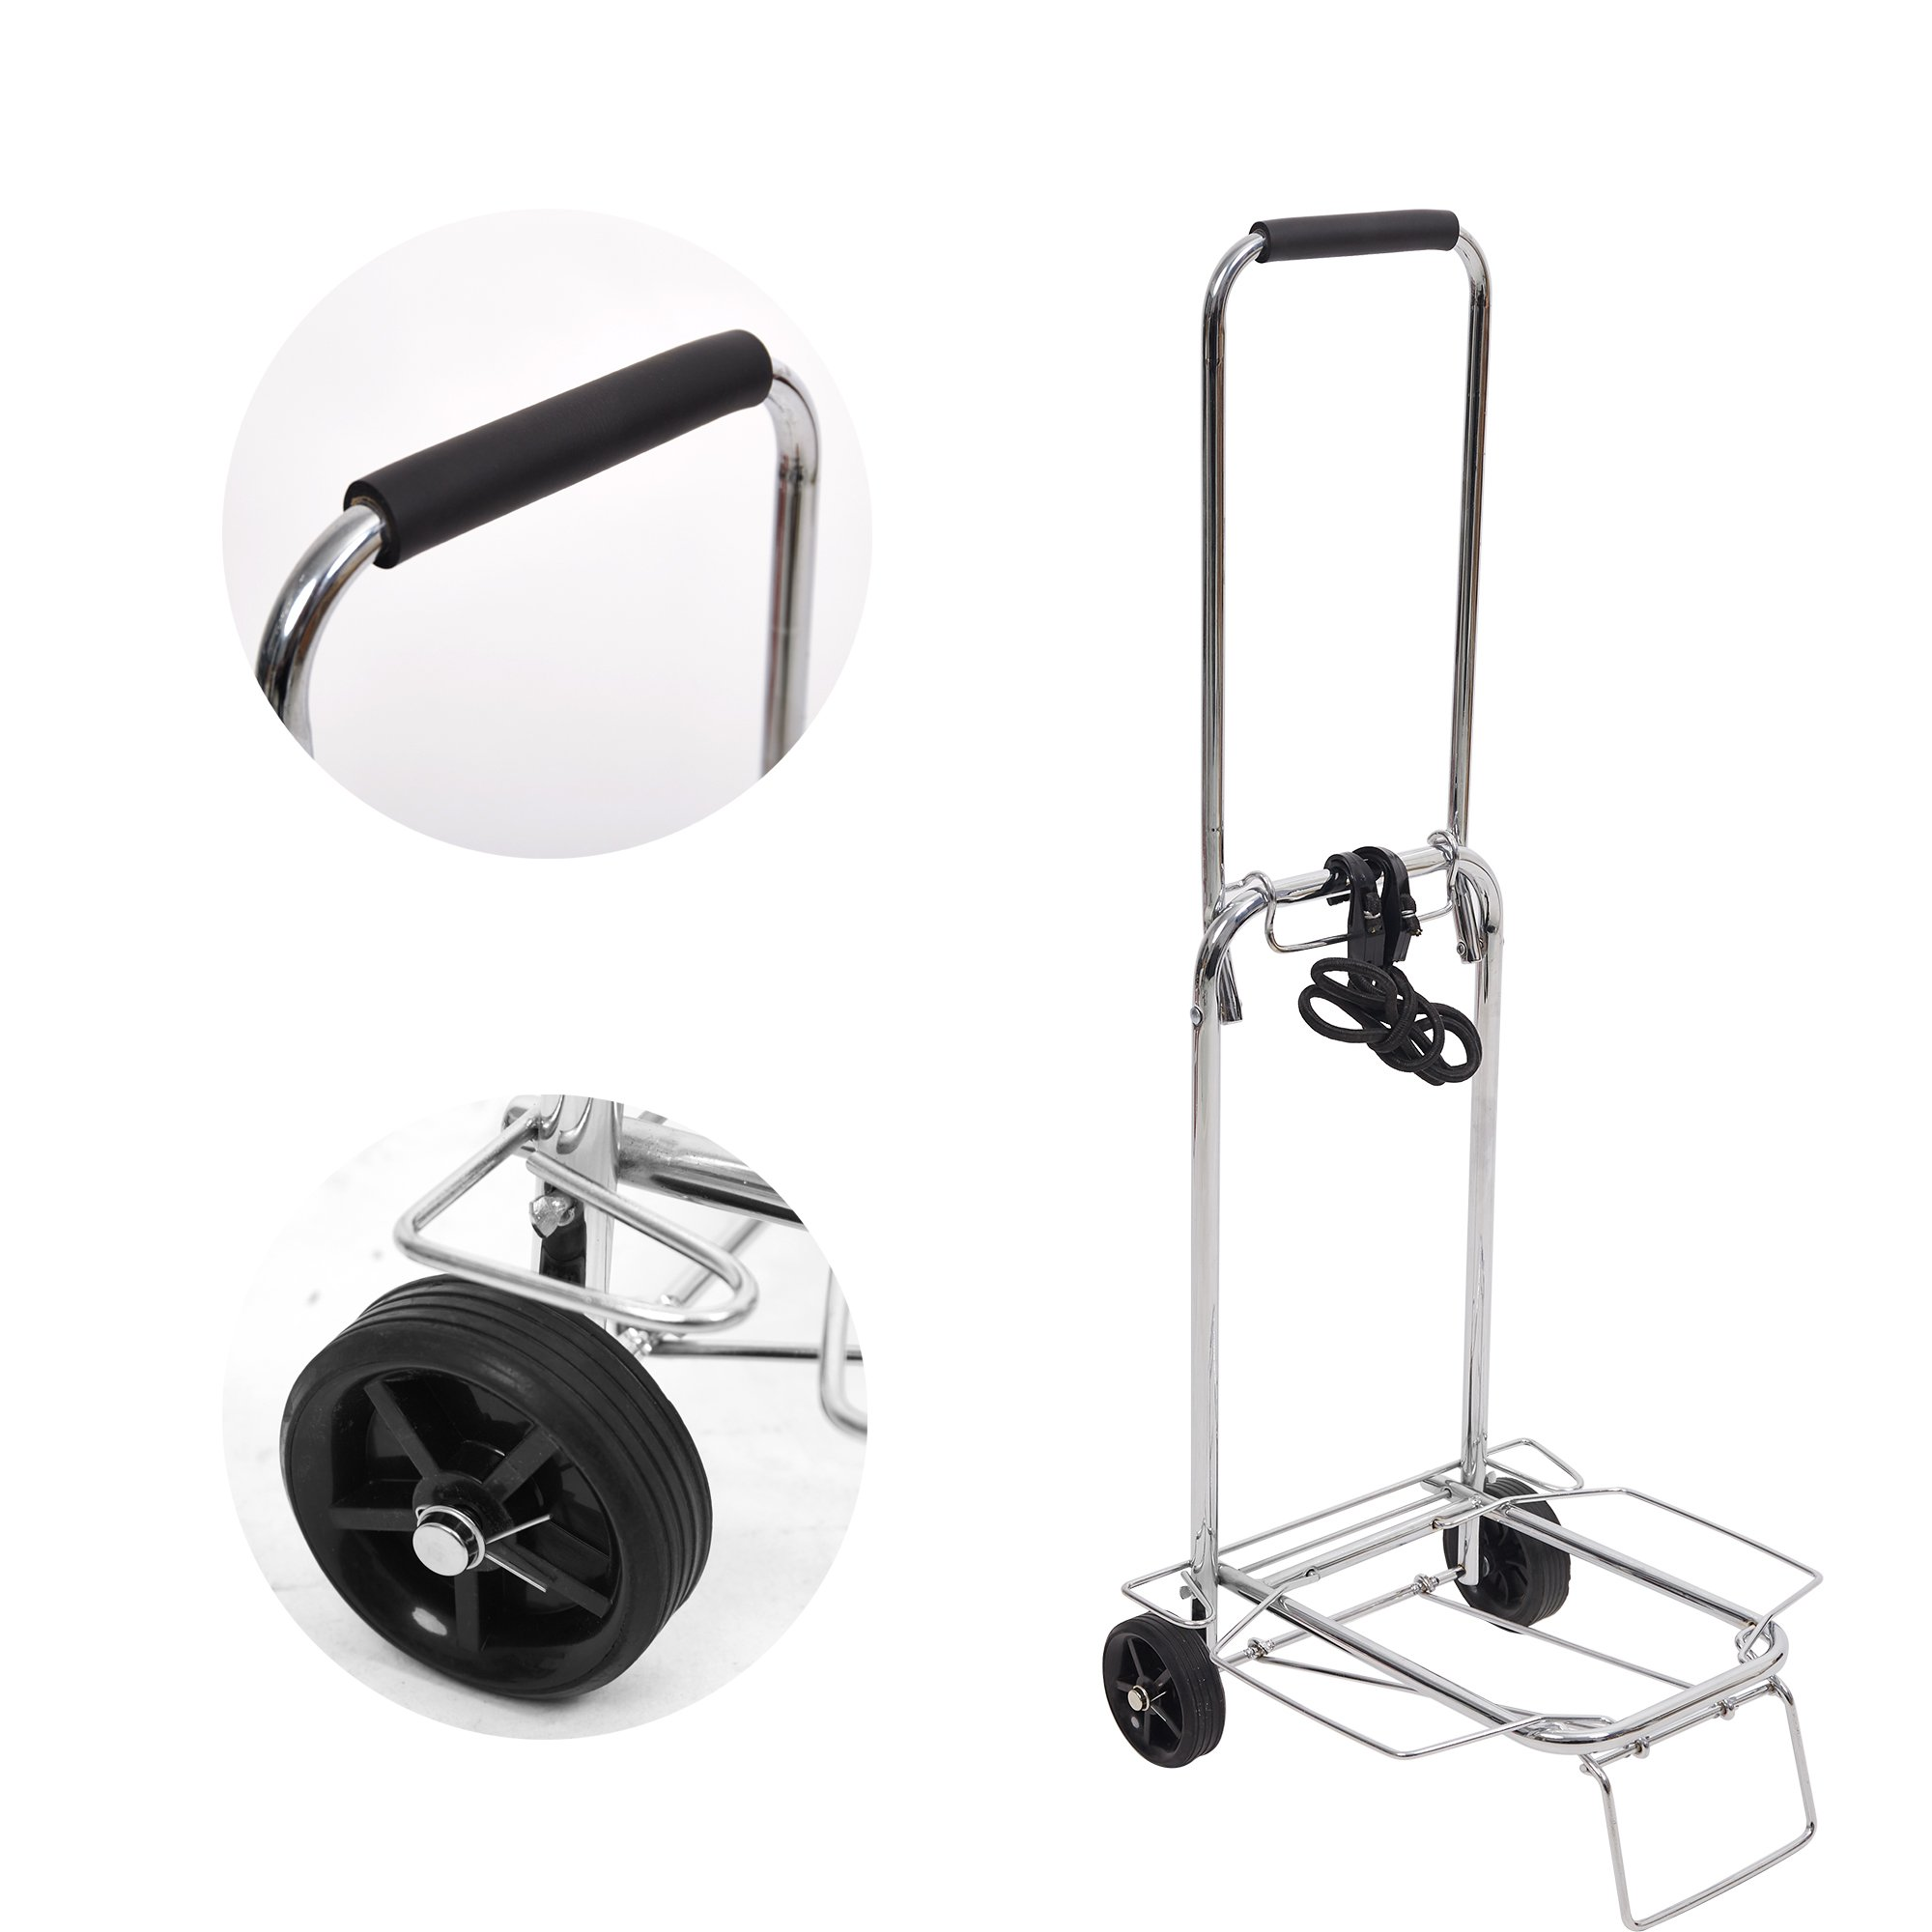 KARMAS PRODUCT Little Shopping Grocery Cart Lightweight Folding Hand Truck with Strap 50 Kg/110 lbs,11.8''x13.8''x35.4''